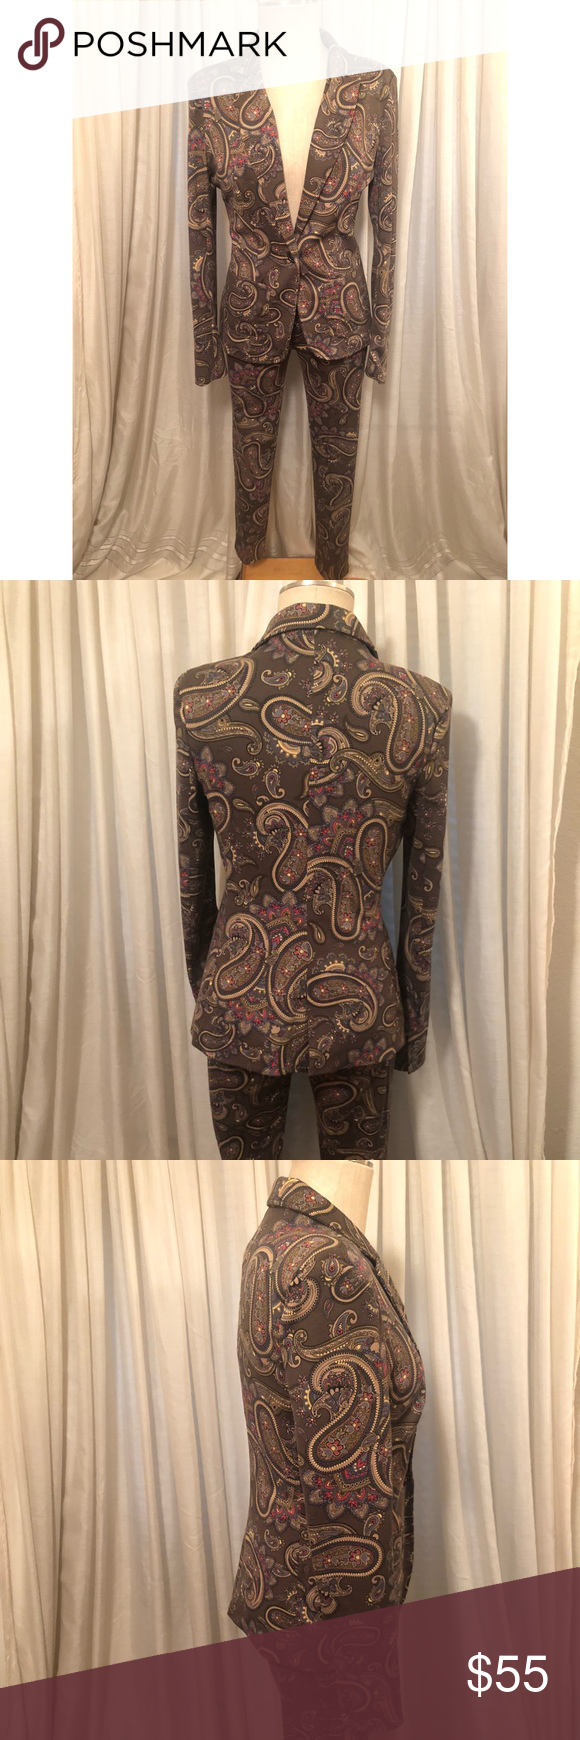 mng Paisley Printed Suit Waist 30 inches Inseam 29 inches